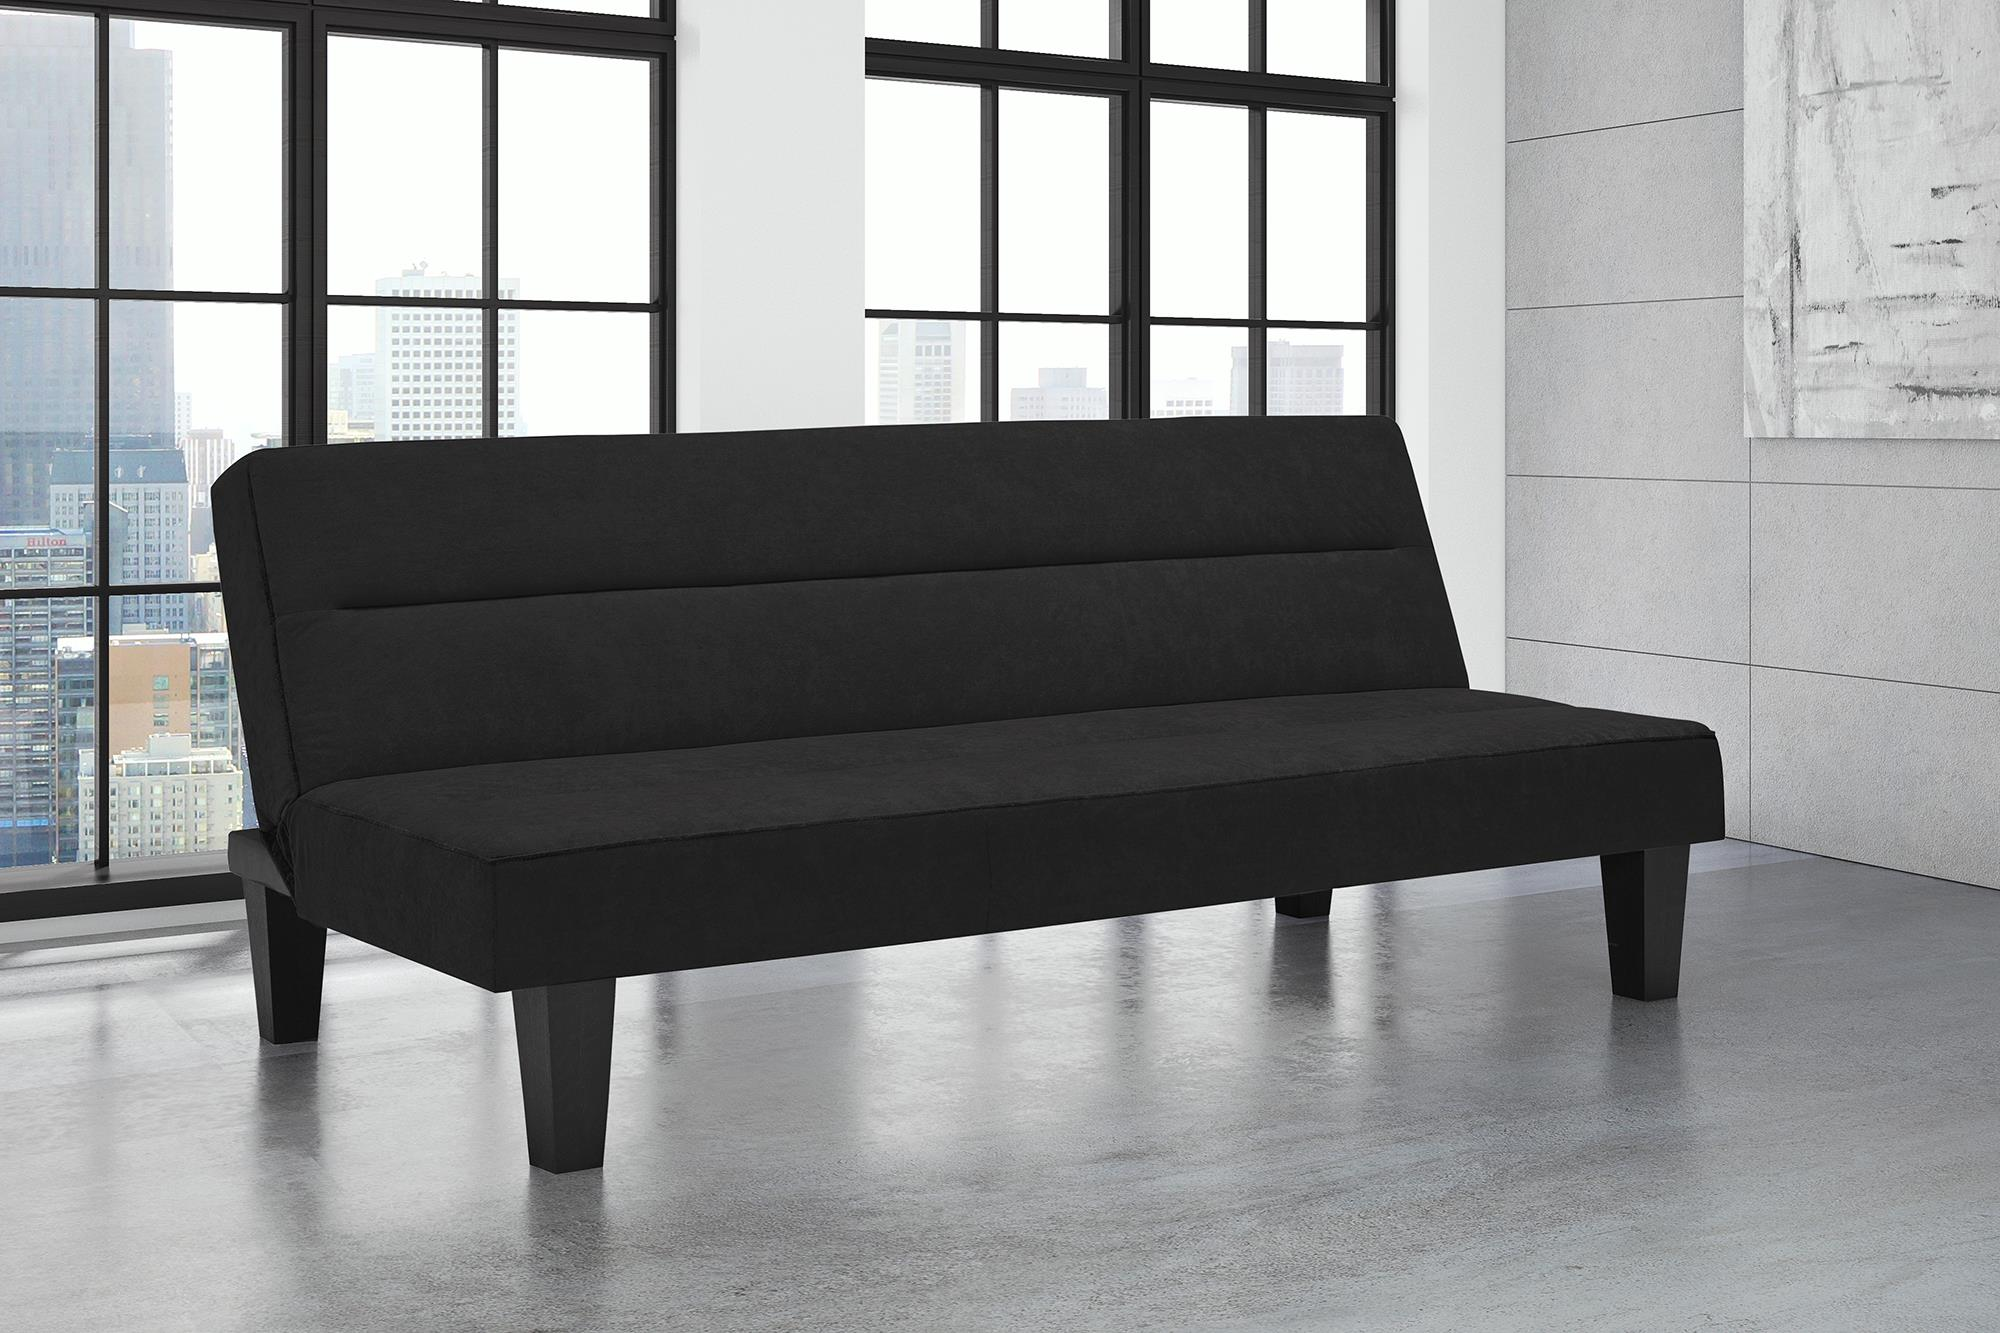 Fashionable sofabed kebo futon sofa bed, multiple colors mosutgd